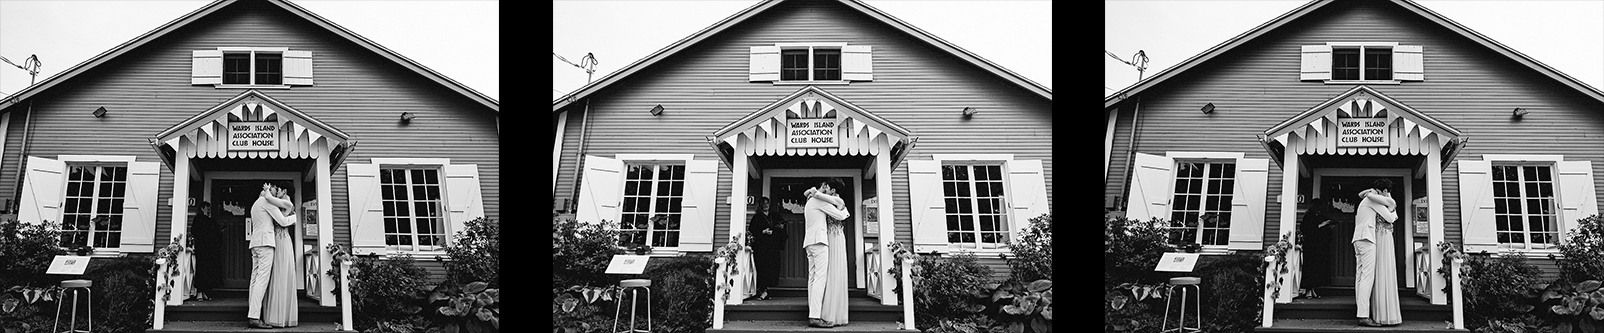 Best-Wedding-Photographers-Toronto-with-documentary-style-photojournalistic-wedding-photographer-editorial-cool-hip-timeless-Intimate-Vintage-Toronto-Island-Cafe-Clubhouse-Wedding-Venue-Detail-cinematic-first-Kiss-Ceremony-Cinematic.jpg